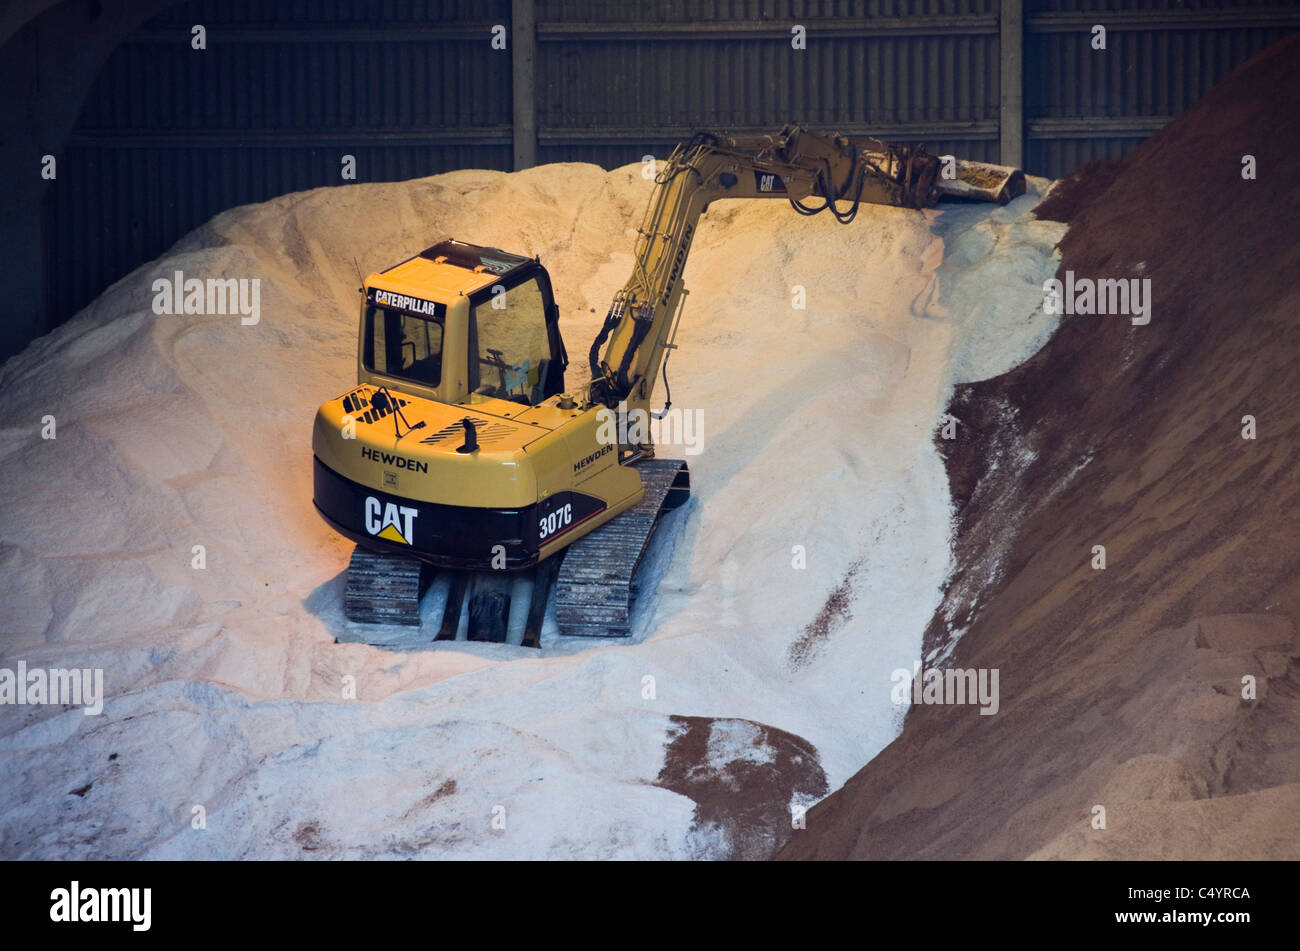 UK. Road salt and grit supplies stored in County Council depot for cold winter weather. - Stock Image